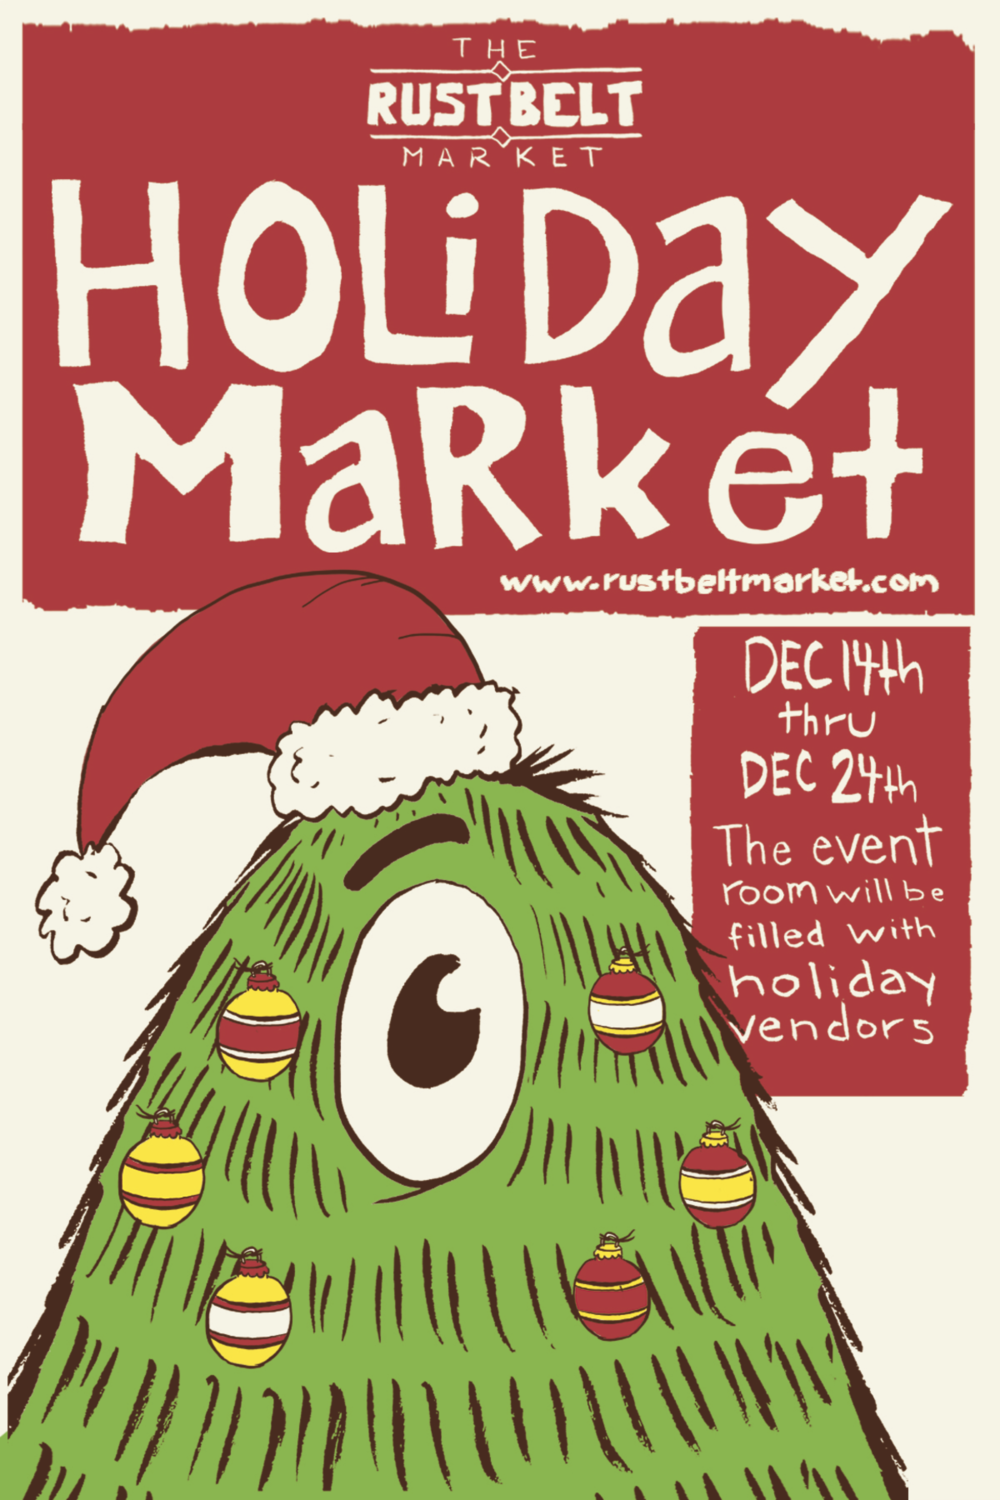 Happy Holidays from The Rust Belt Market!